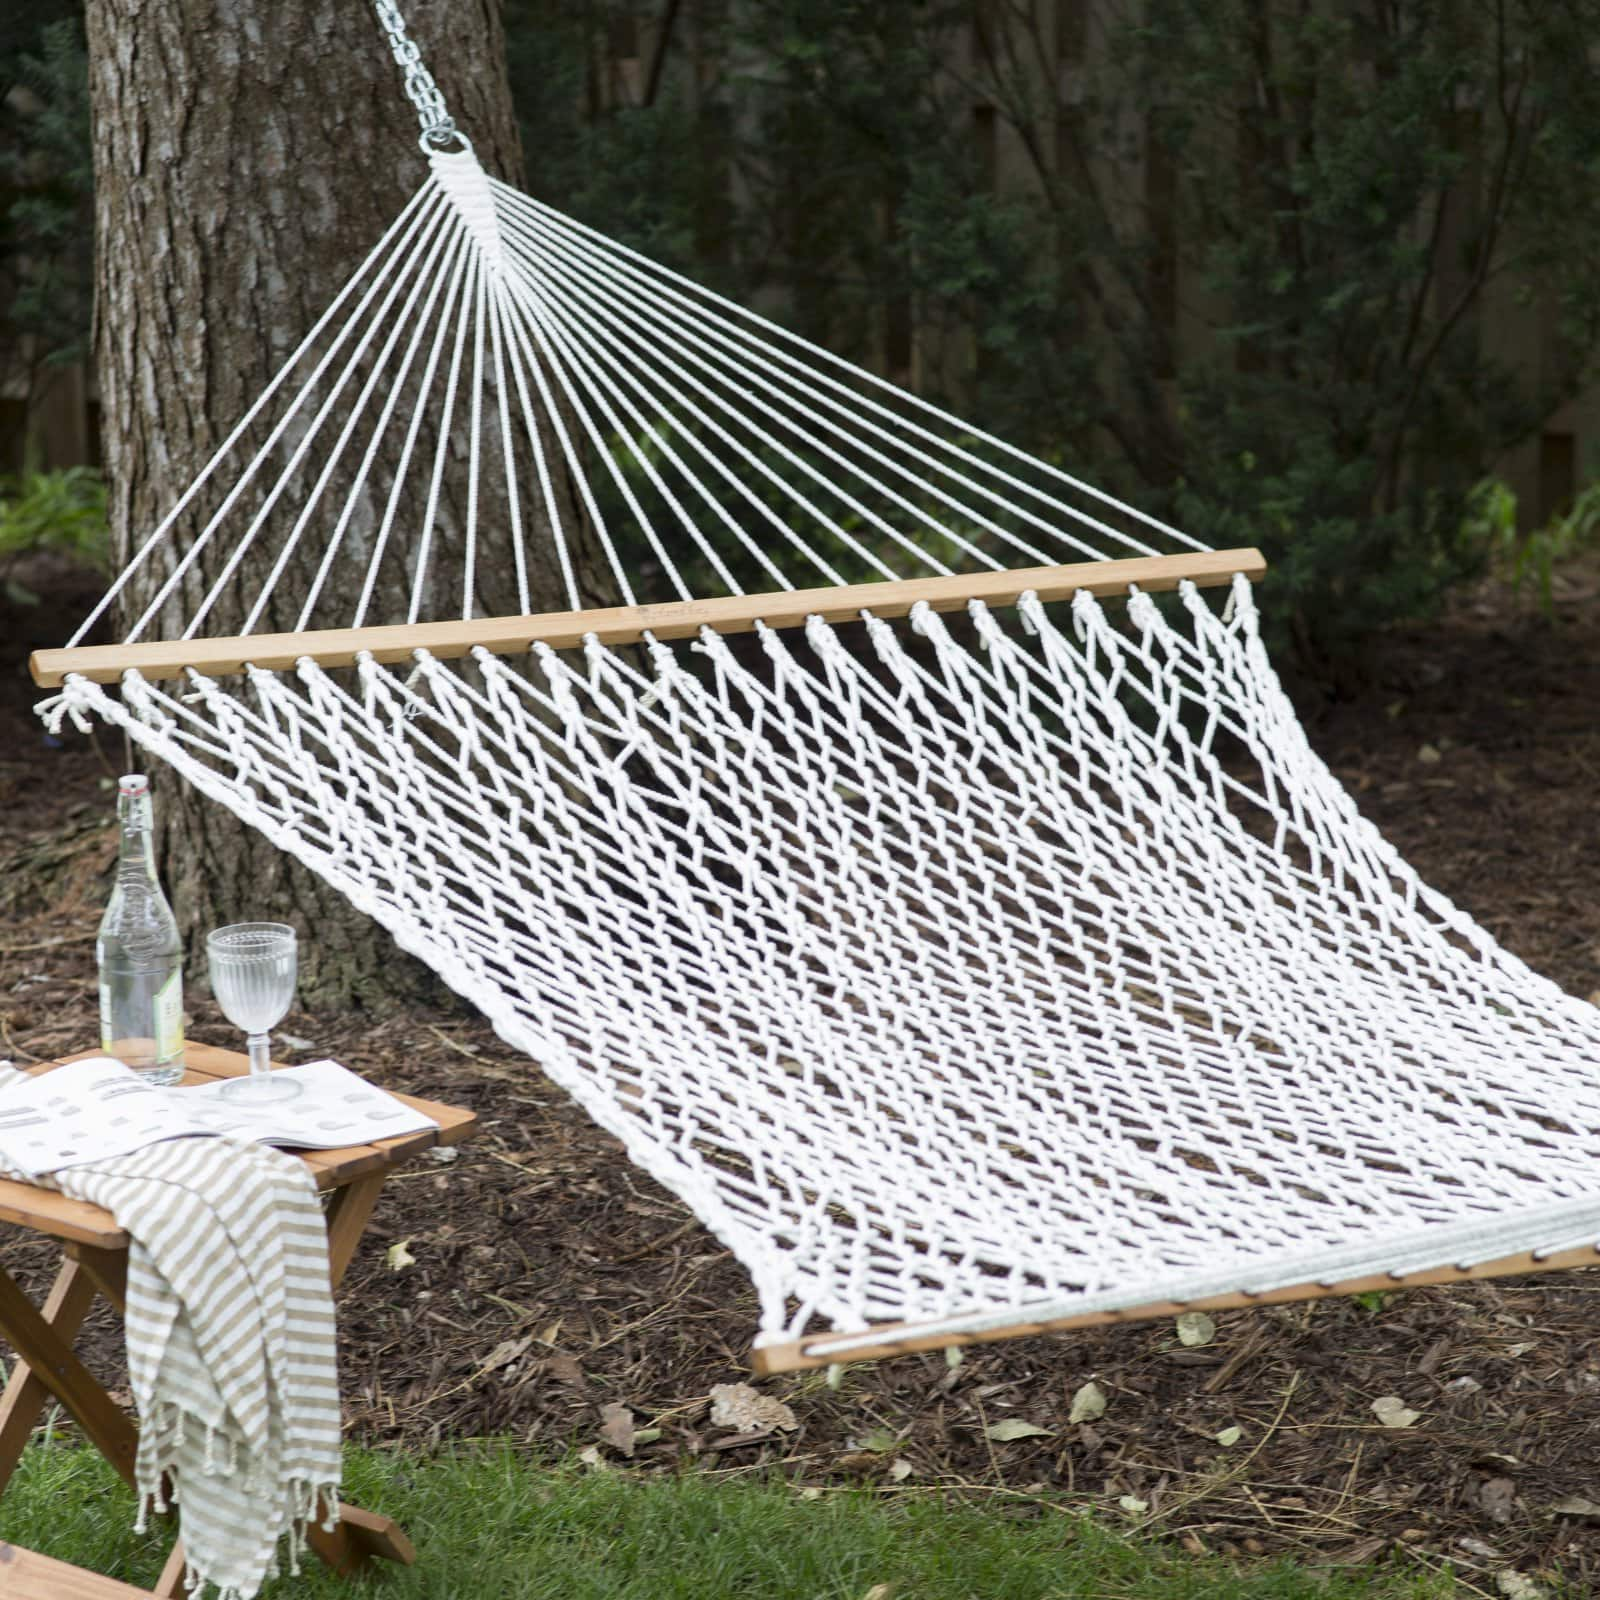 Coral Coast XL Thick Rope Double Hammock w/ Hanging Hardware (UV Resistant Polyester) $24 + Free Shipping